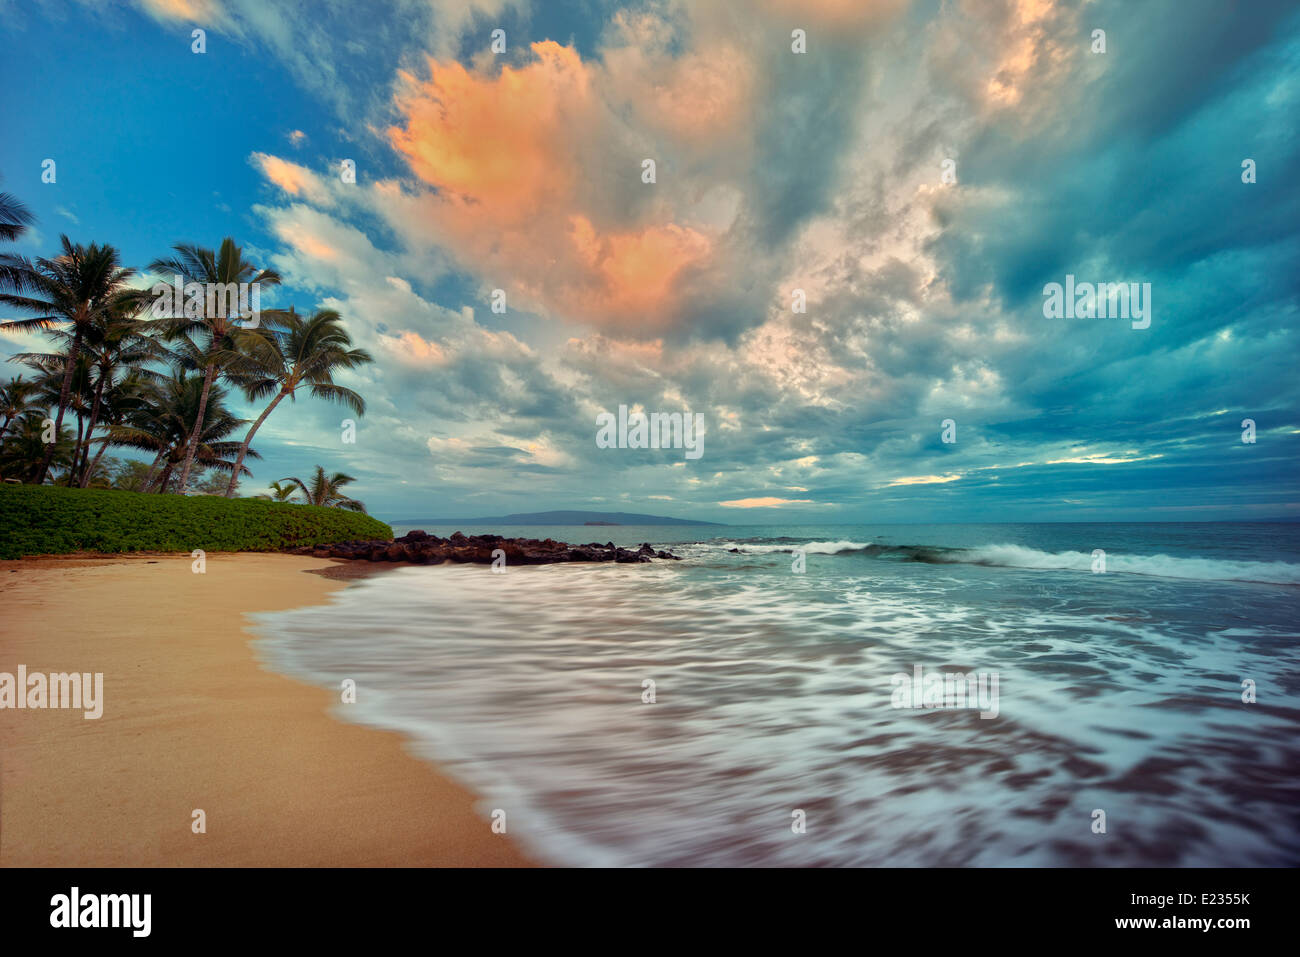 Sunrise ocean waves and palm trees on beach. Maui, Hawaii Stock Photo